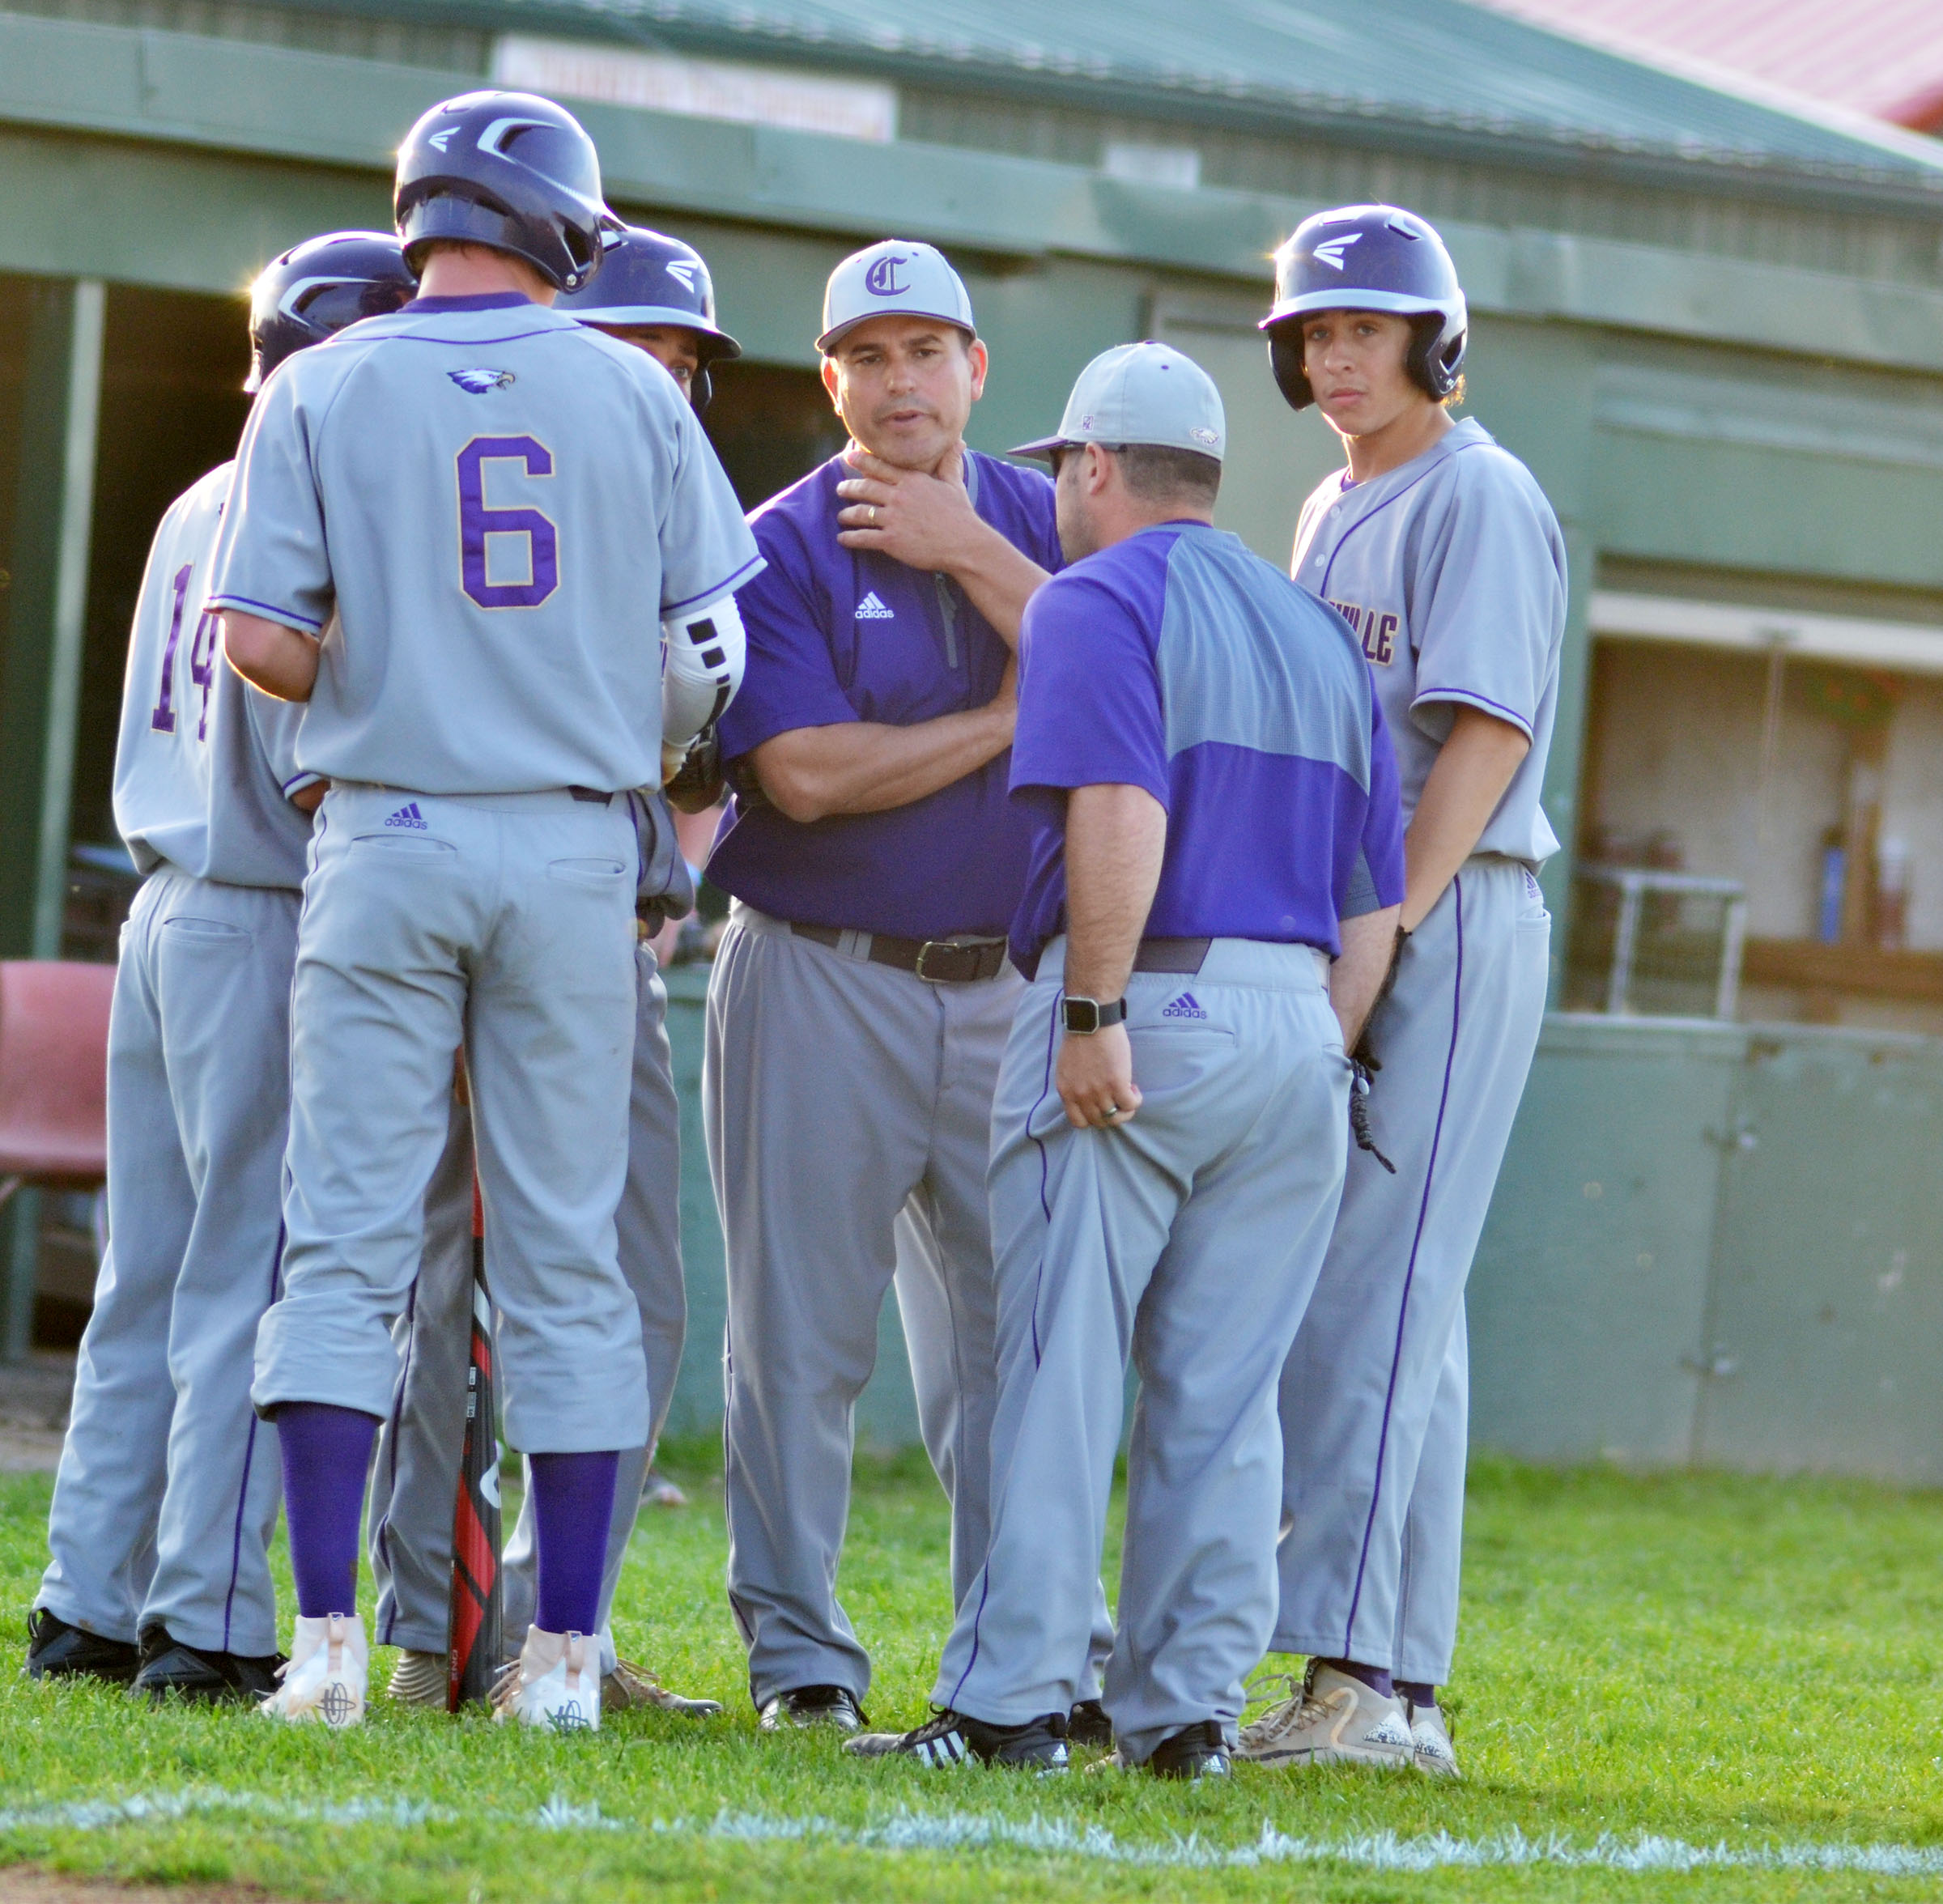 CHS head baseball coach Kirby Smith talks to his players.